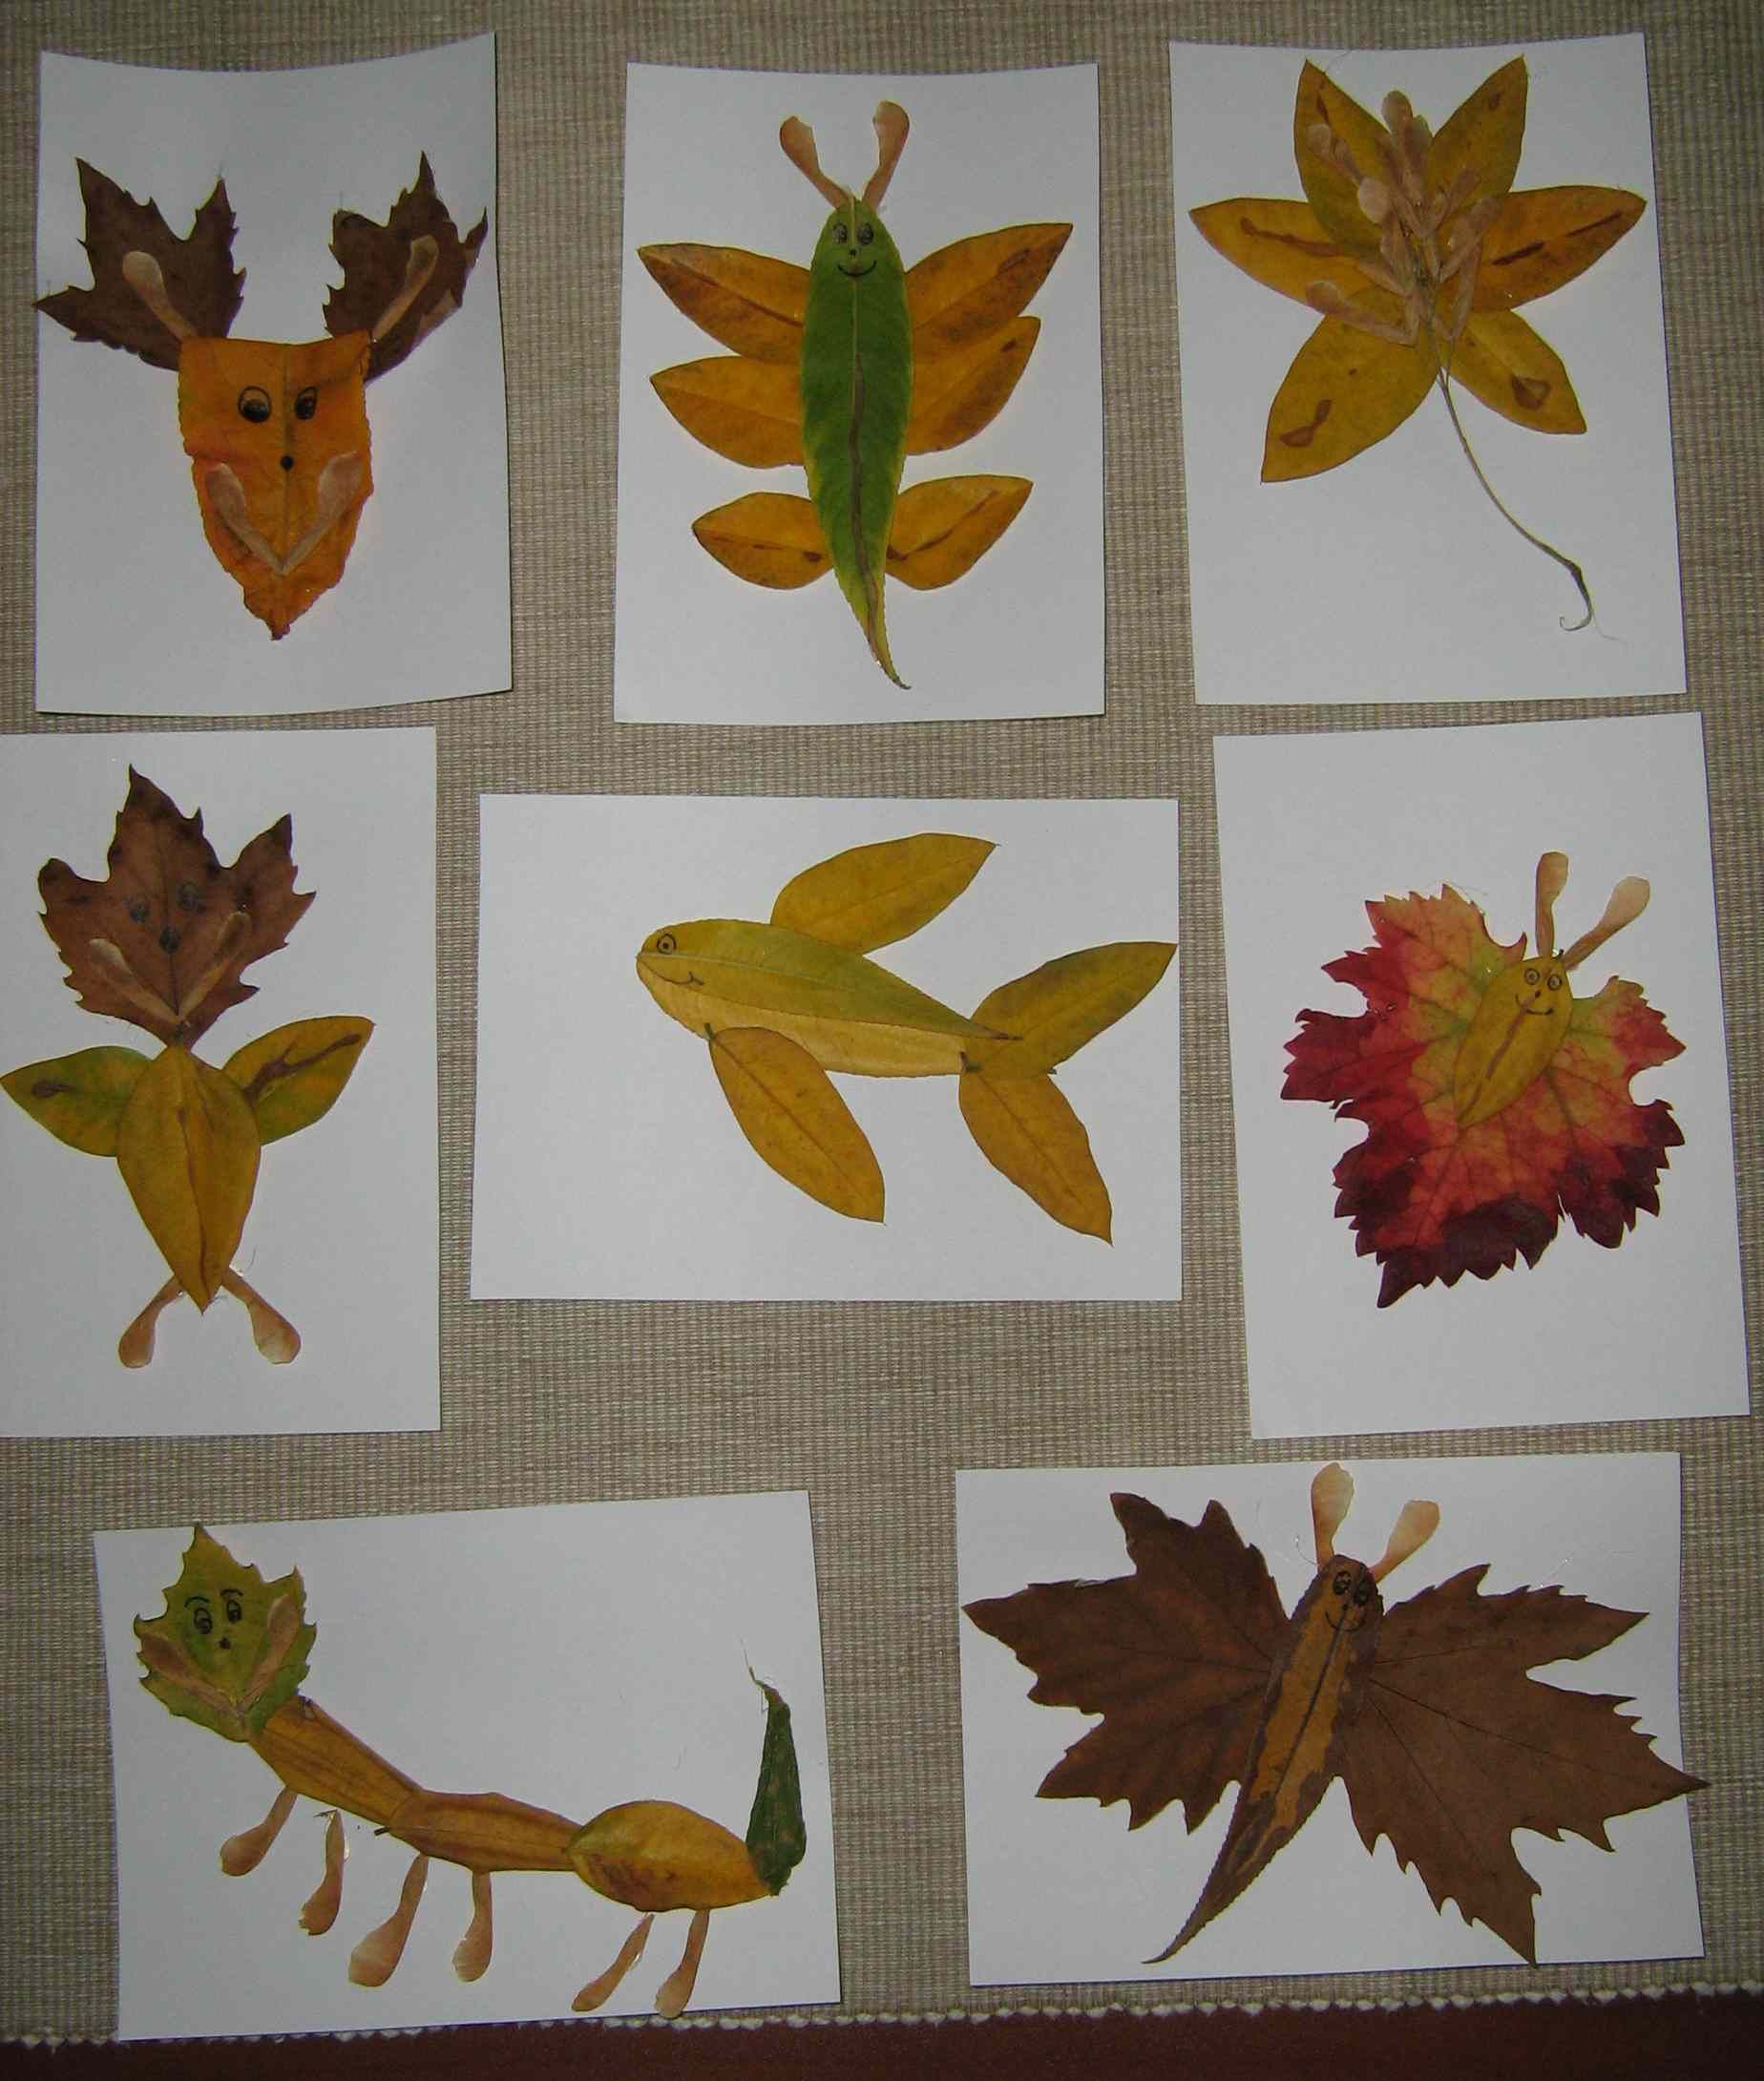 Making Pictures With Leaves Craft Re Pinned By Thriving